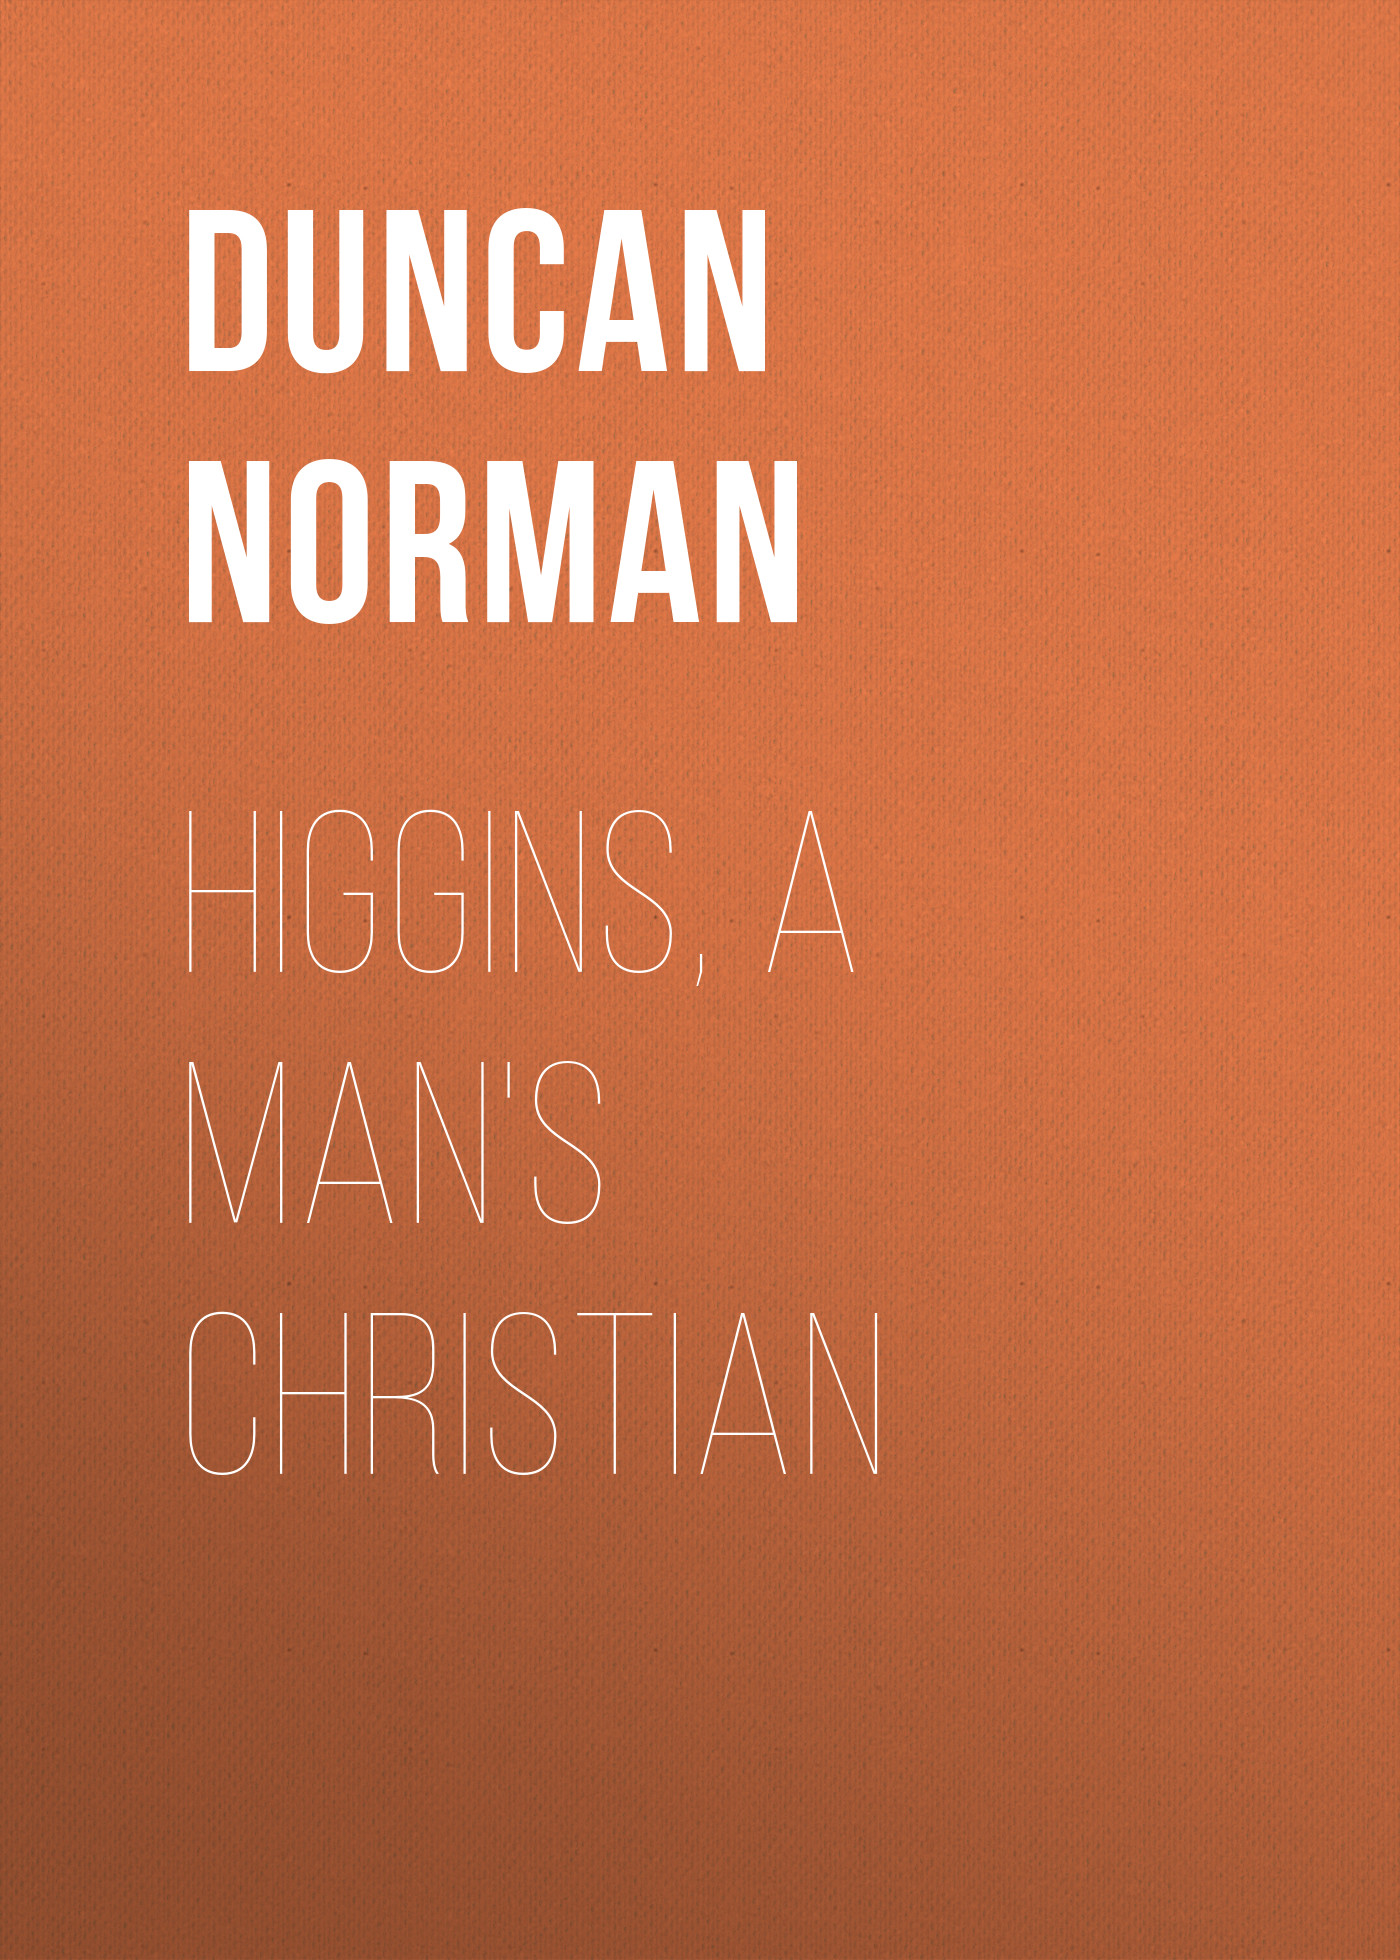 Duncan Norman Higgins, a Man's Christian oxygen norman